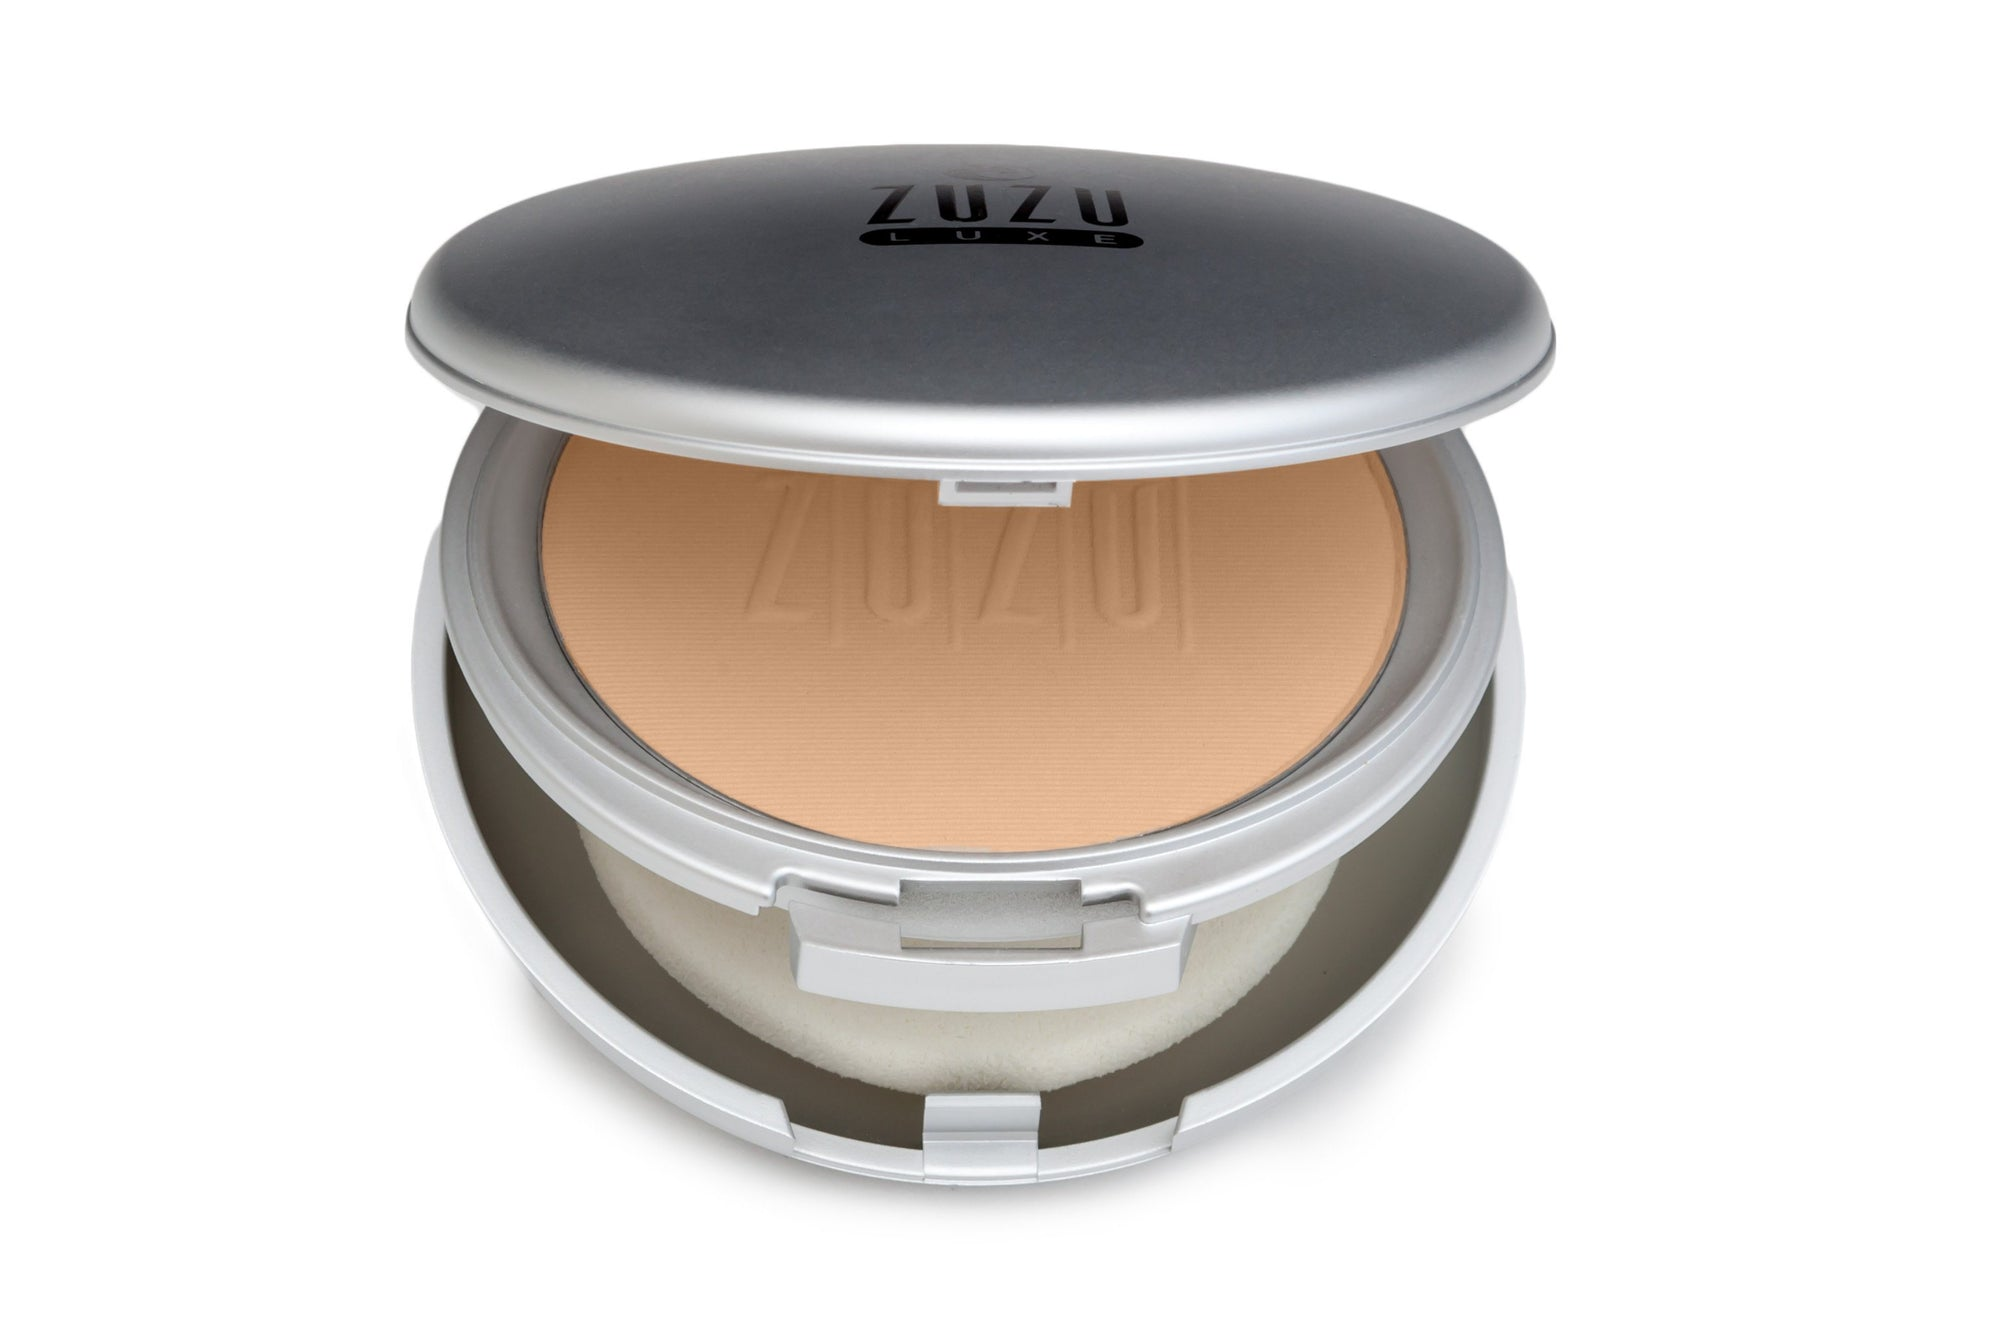 Beauty & Skin Care - Zuzu Luxe - Dual Powder Foundation, D-14